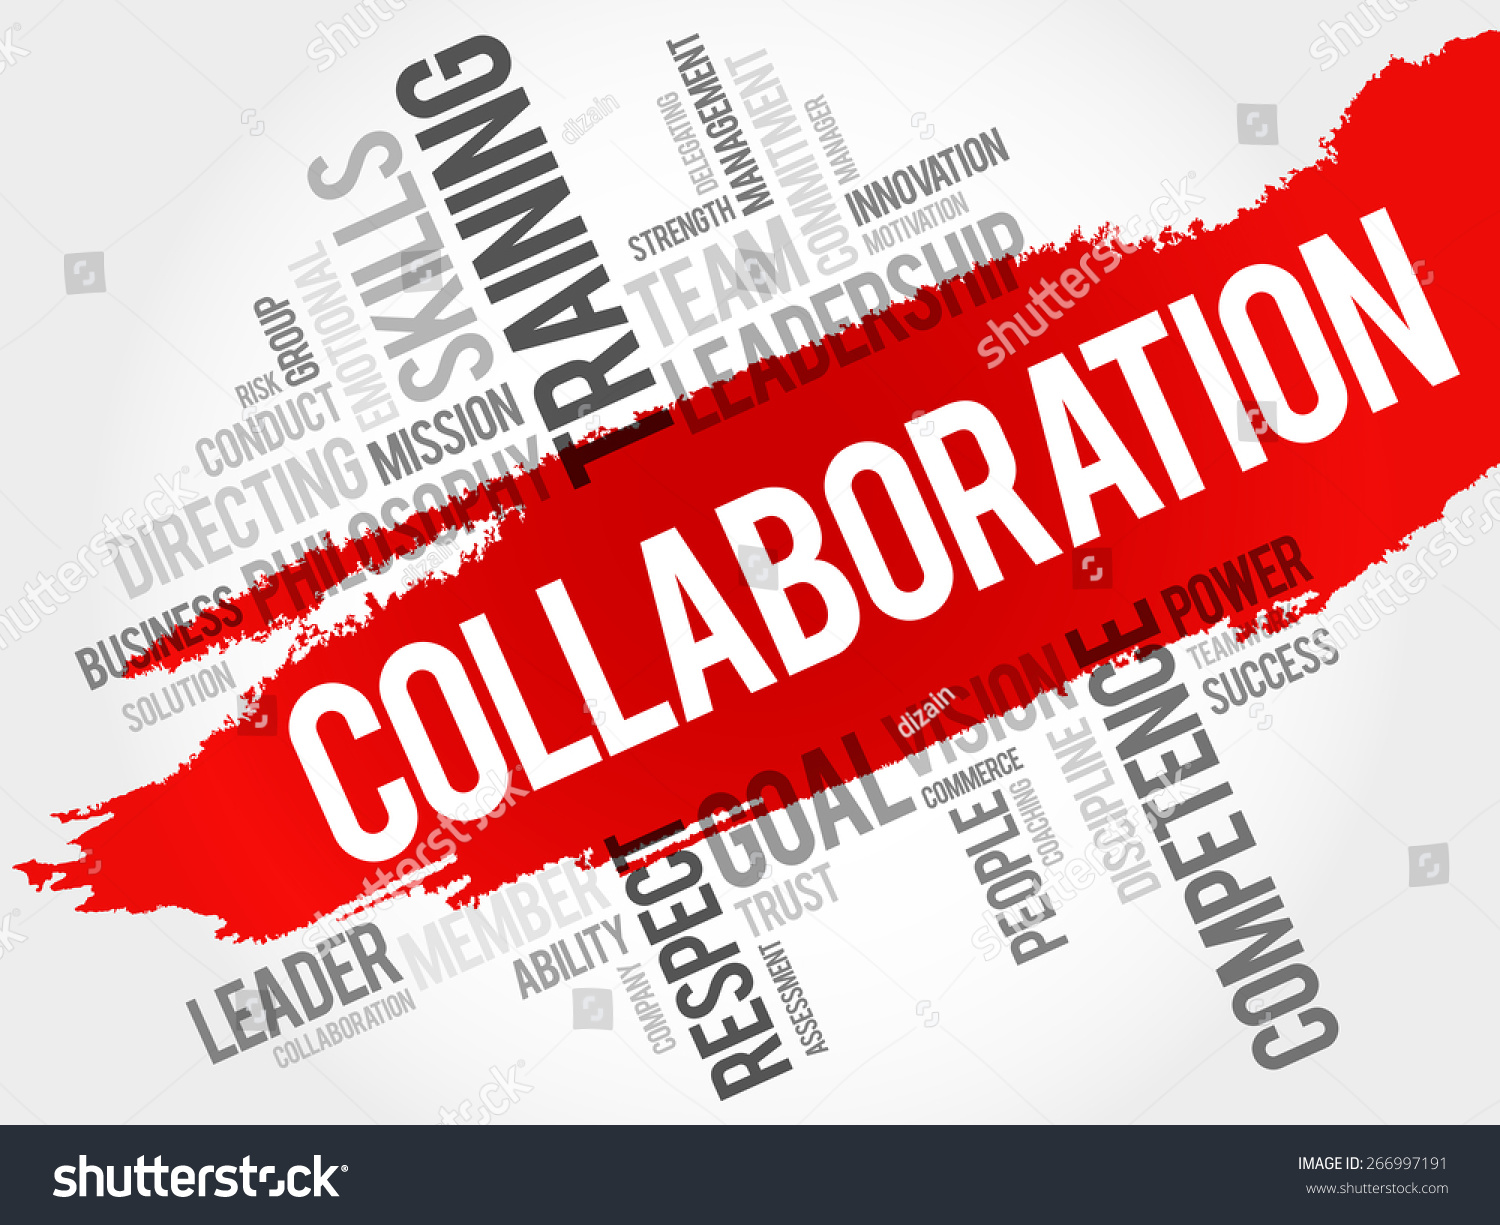 Collaboration Word Cloud Business Concept Stock Vector. Wrongful Termination Los Angeles. Online Statistics Certificate. San Diego Injury Law Center Iphone Stock App. Furman University Admissions Mrcp Cpt Code. Home Insurance Comparison Quotes. Hillsborough Title Company Hp Rebate Status. Sparkman Funeral Home Dallas Hp Support No. Blue Cross Blue Shield Private Health Insurance Plans